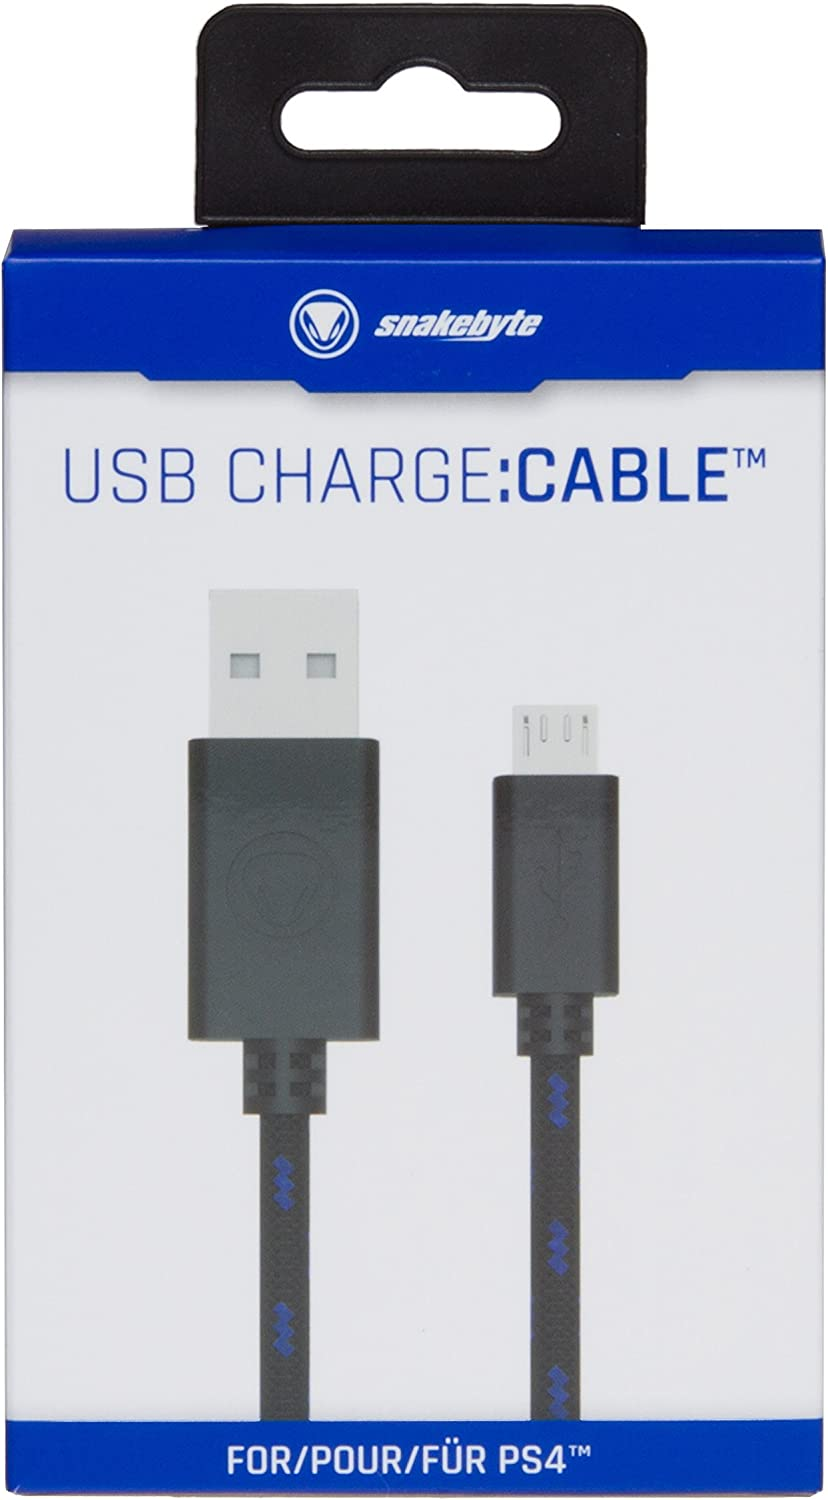 Charging Cable for PS4 Controllers Snakebyte Snakebyte USB Charge:Cable PlayStation 4 13.12 feet 4 m